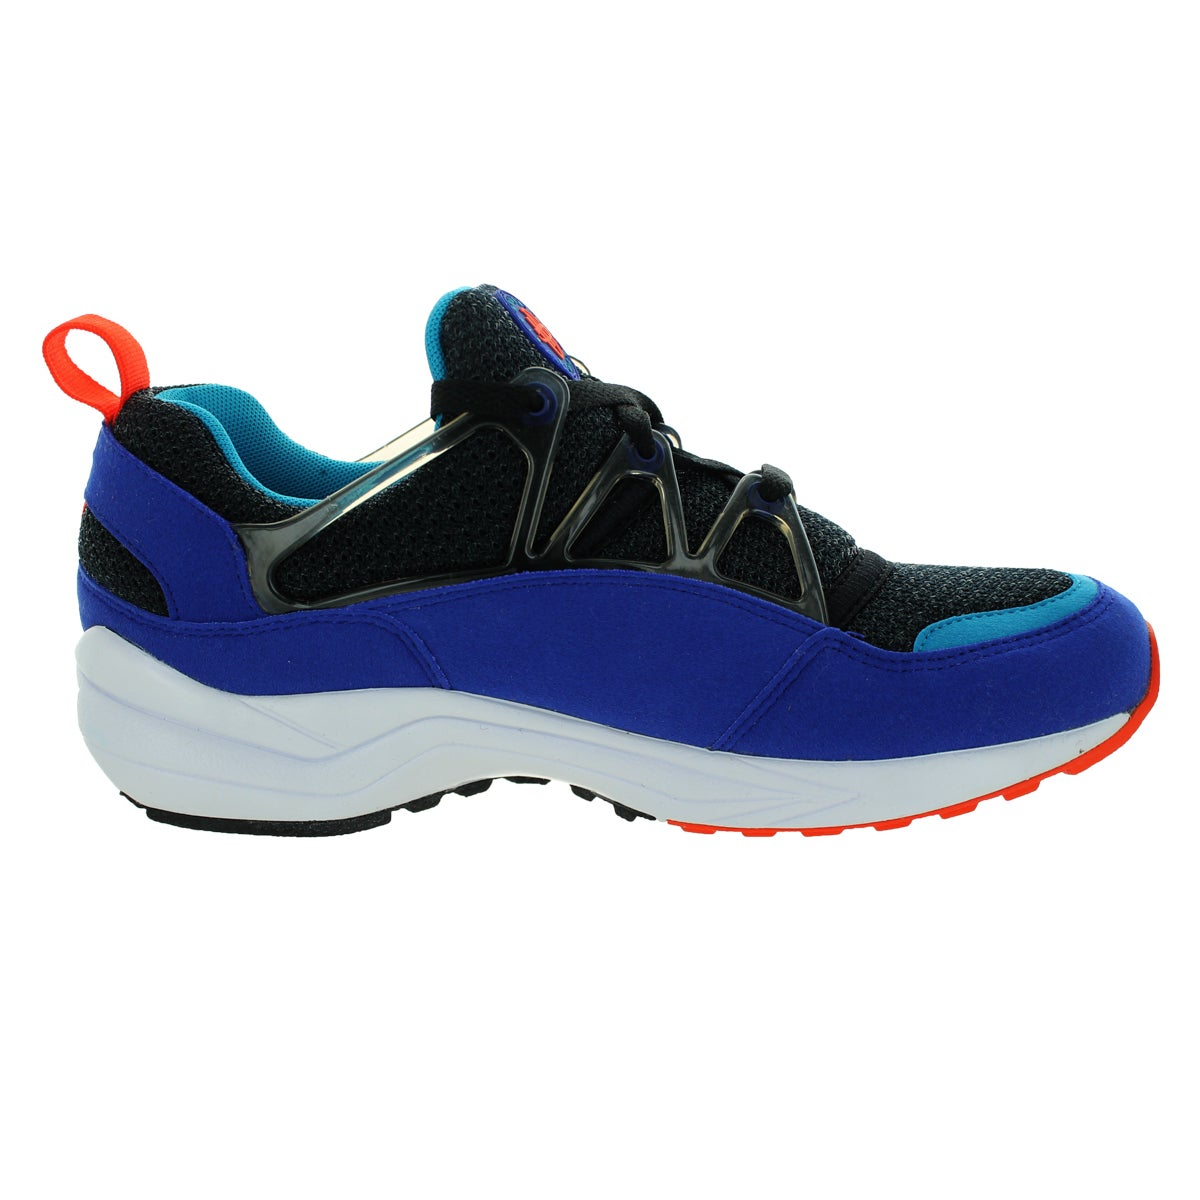 3dc094bc1f7e6 Shop Nike Men s Air Huarache Light Concord Team Orange Black Running Shoe -  Free Shipping Today - Overstock - 13395268